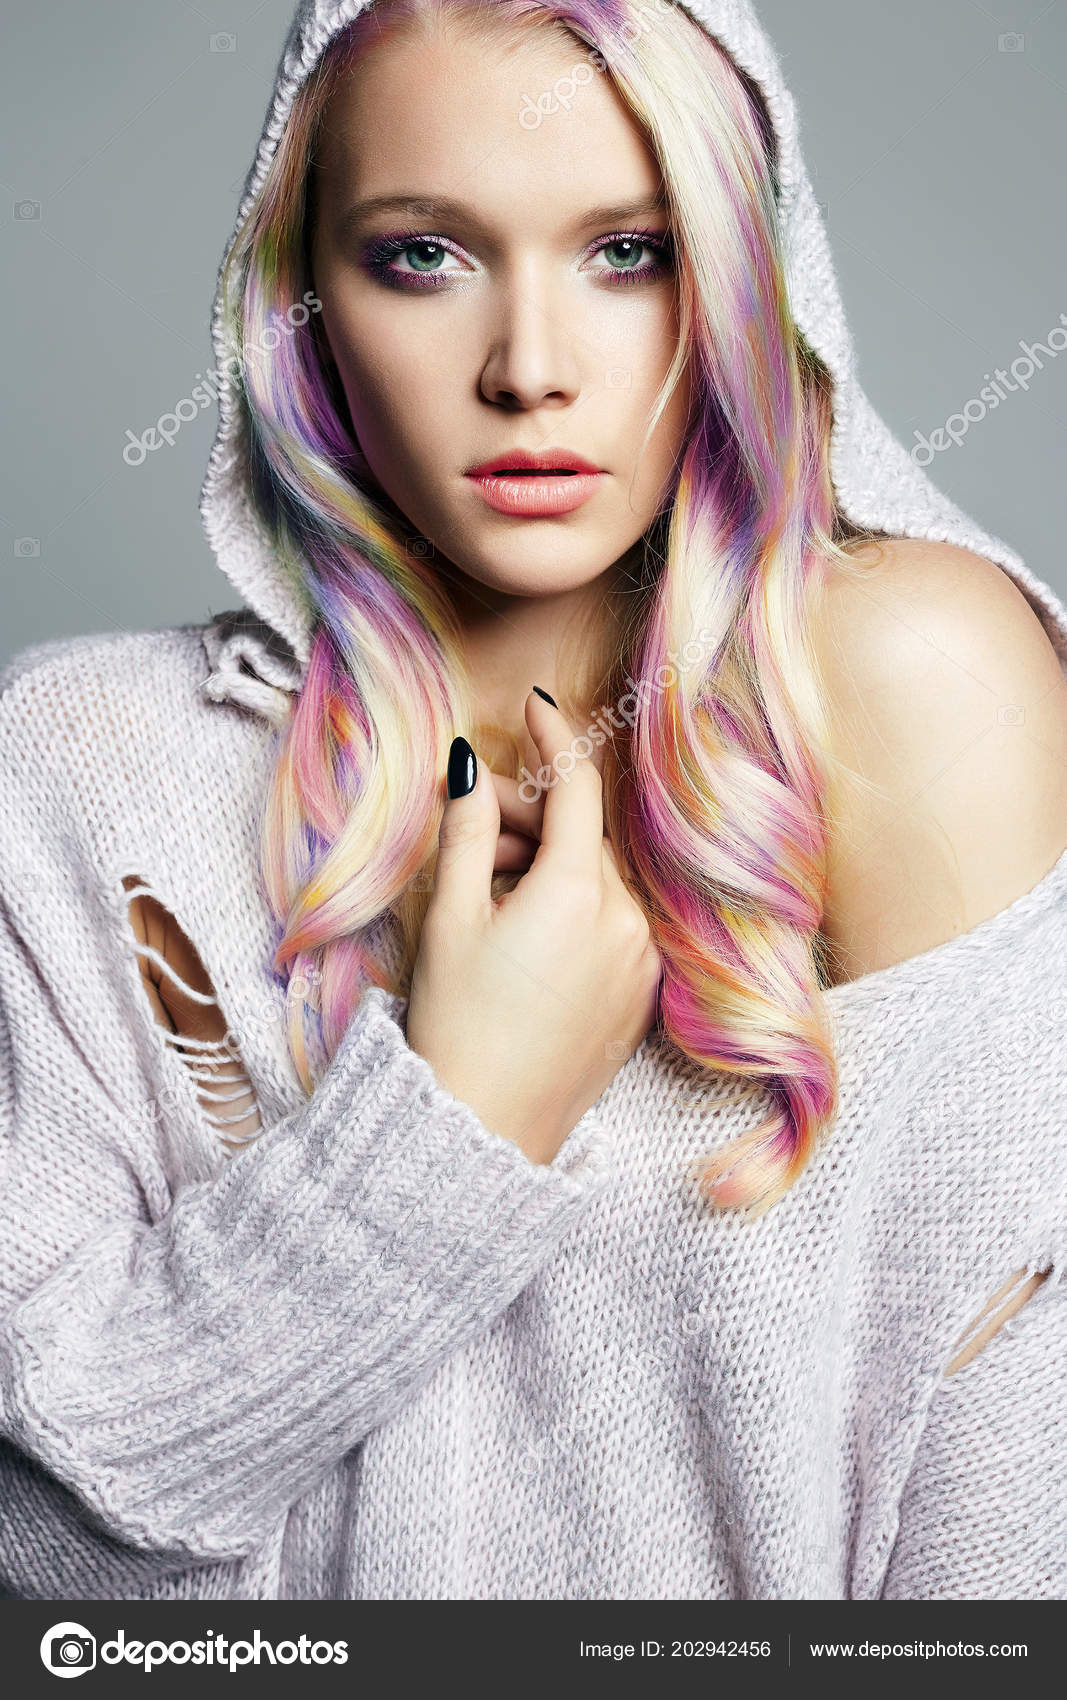 Colorful Hair Beautiful Girl Hood Beauty Fashion Model Colorful Dyed